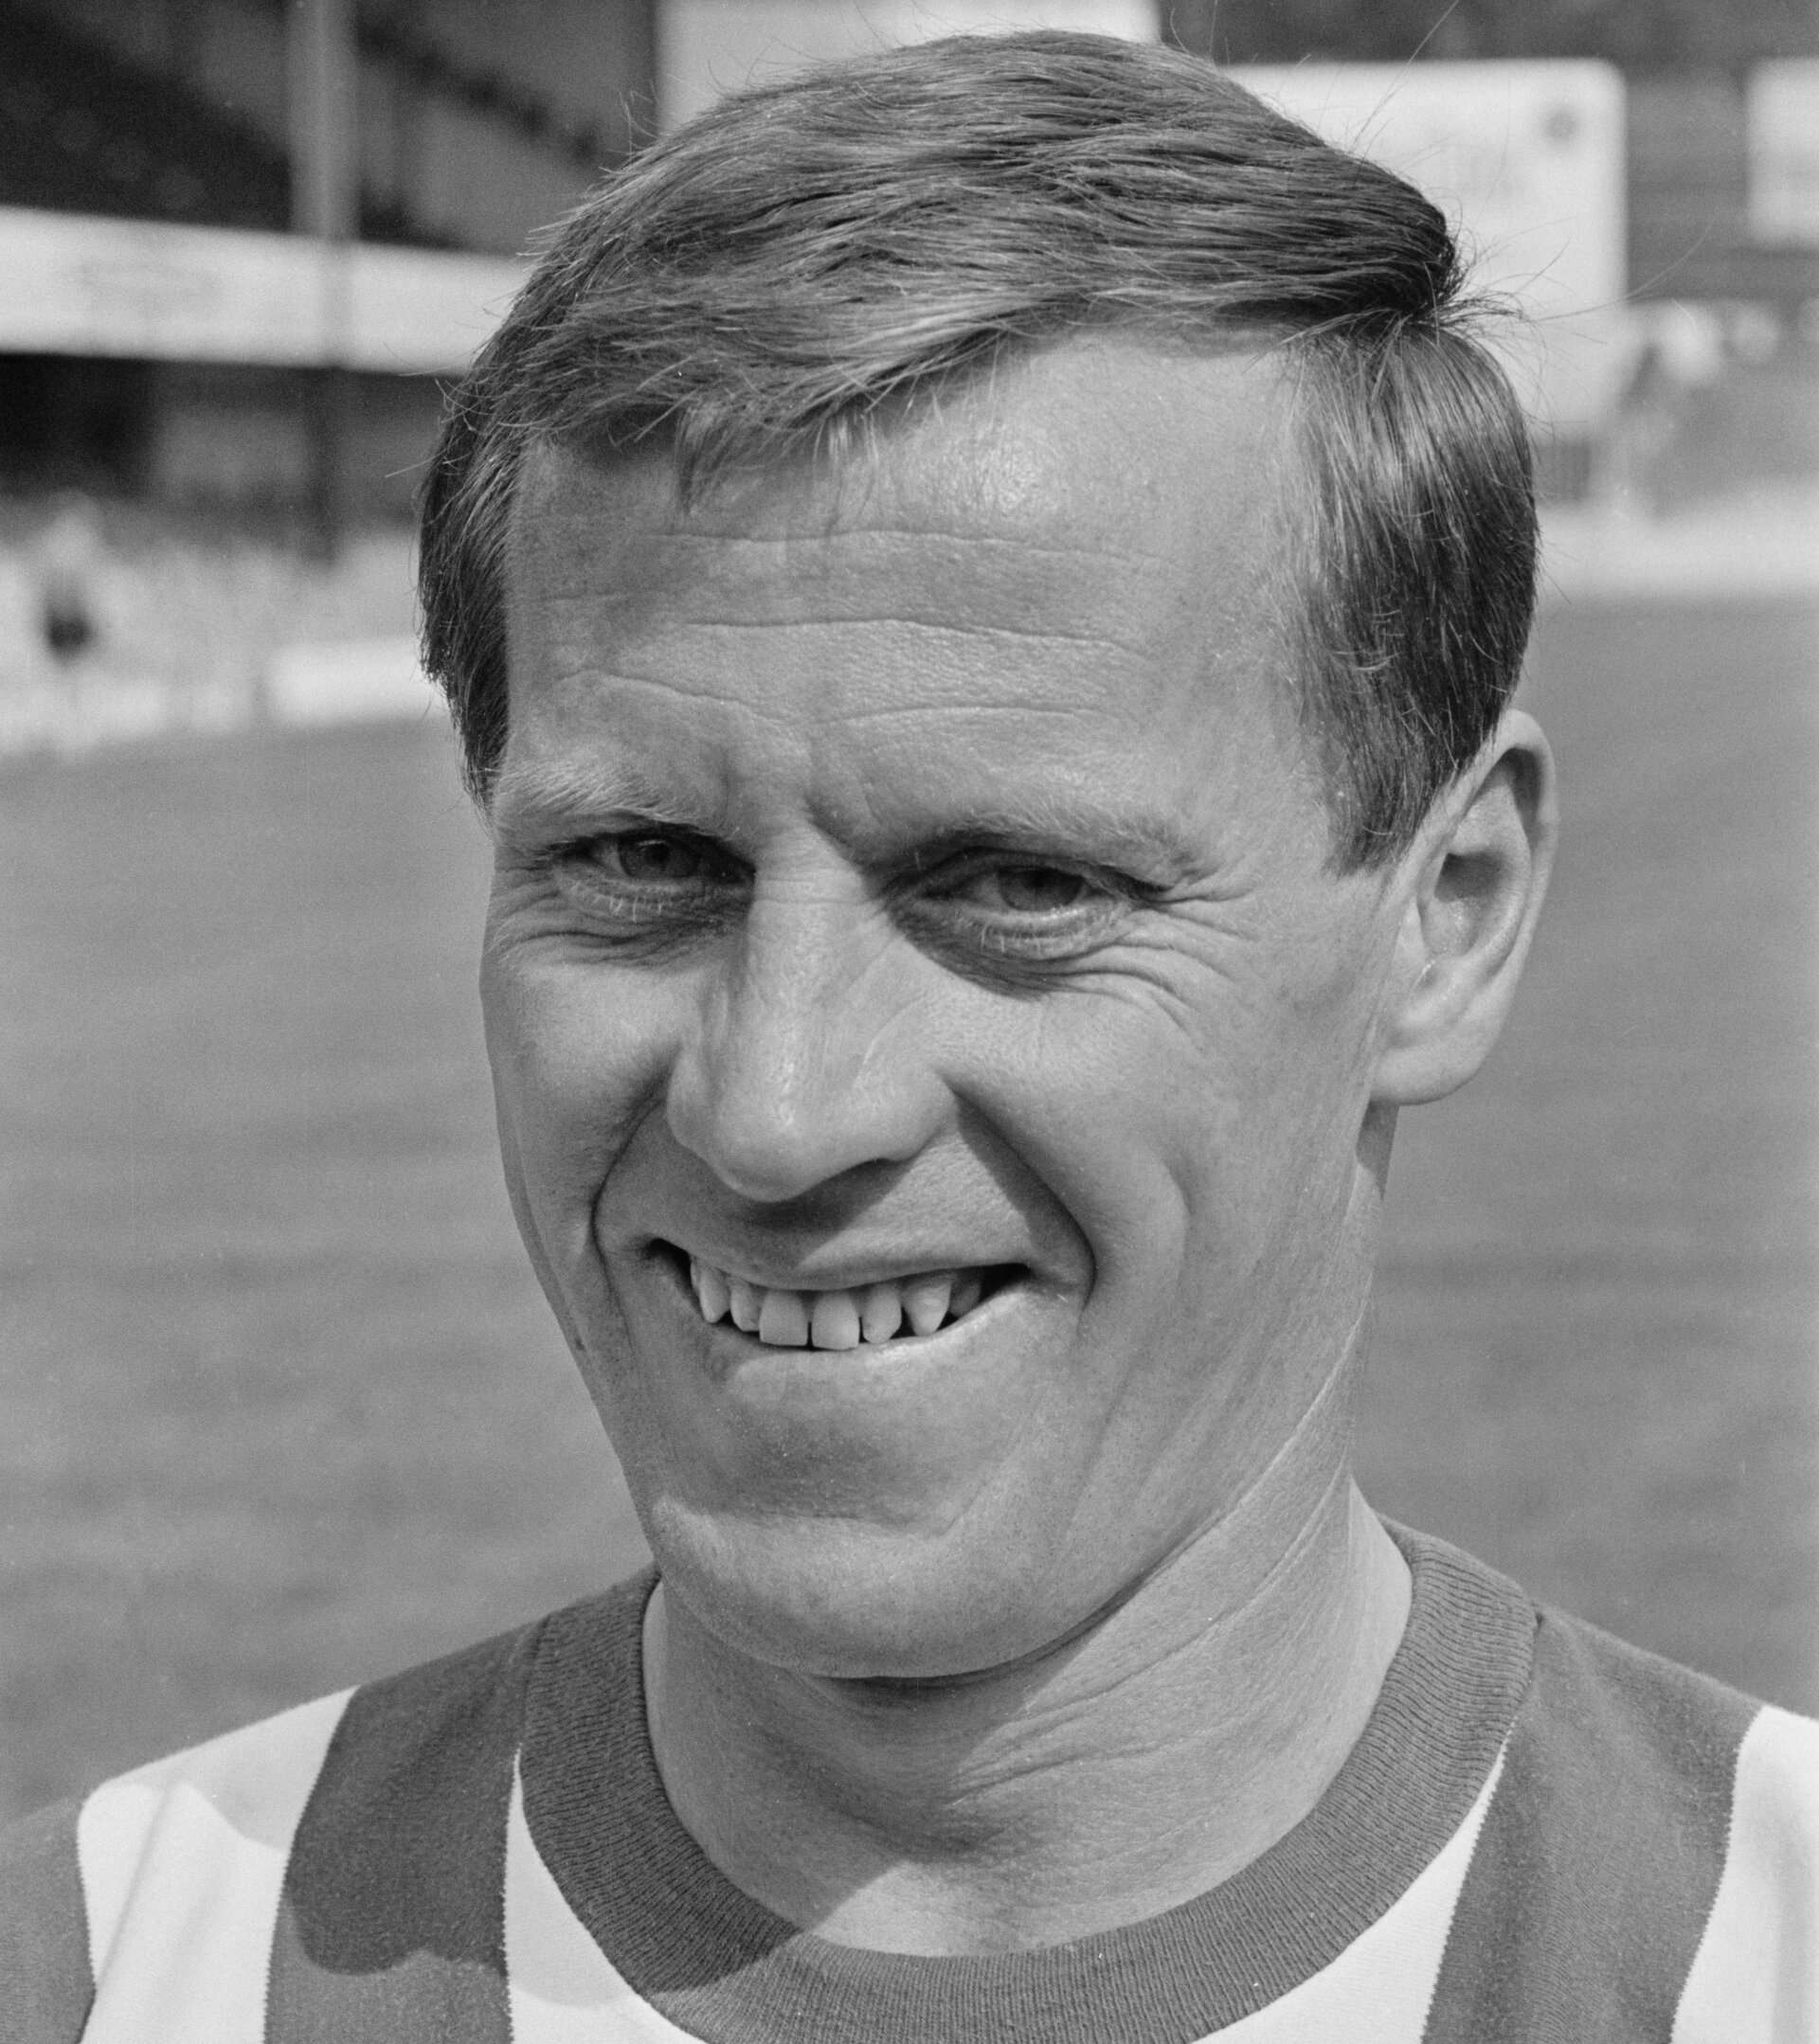 British footballer George O'Brien poses for his Southampton FC player portrait at the club's The Dell ground in Southampton, England, 17th August 1965. (Photo by Woods/Daily Express/Hulton Archive/Getty Images)